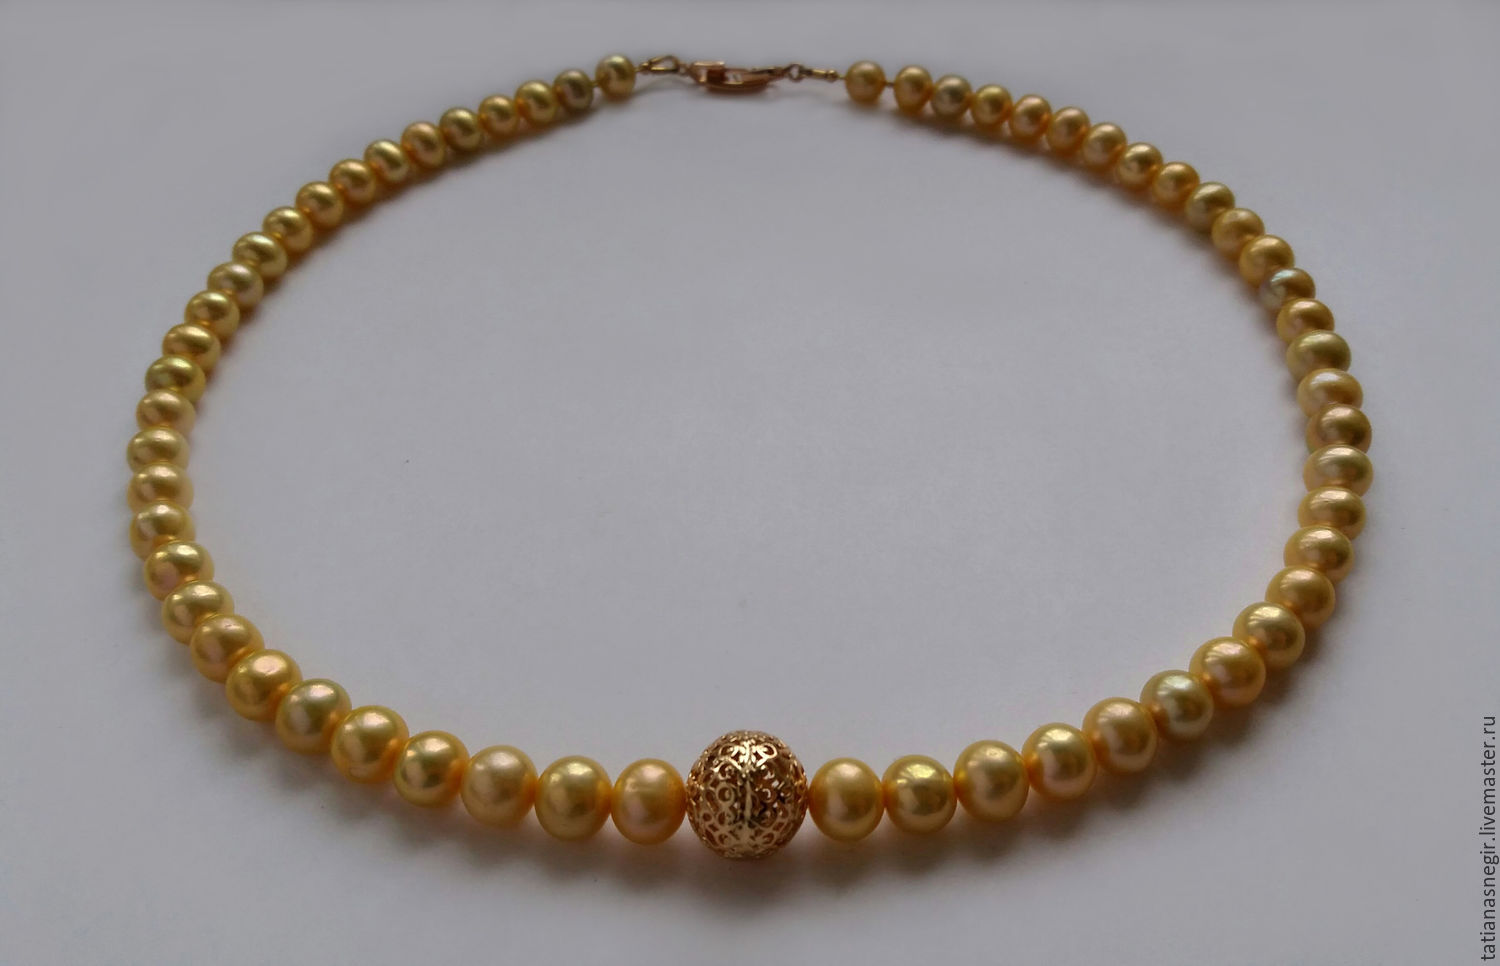 ad stone yellow golden and sized cuffs pearls in of jahaan picture medium topaz ear buy